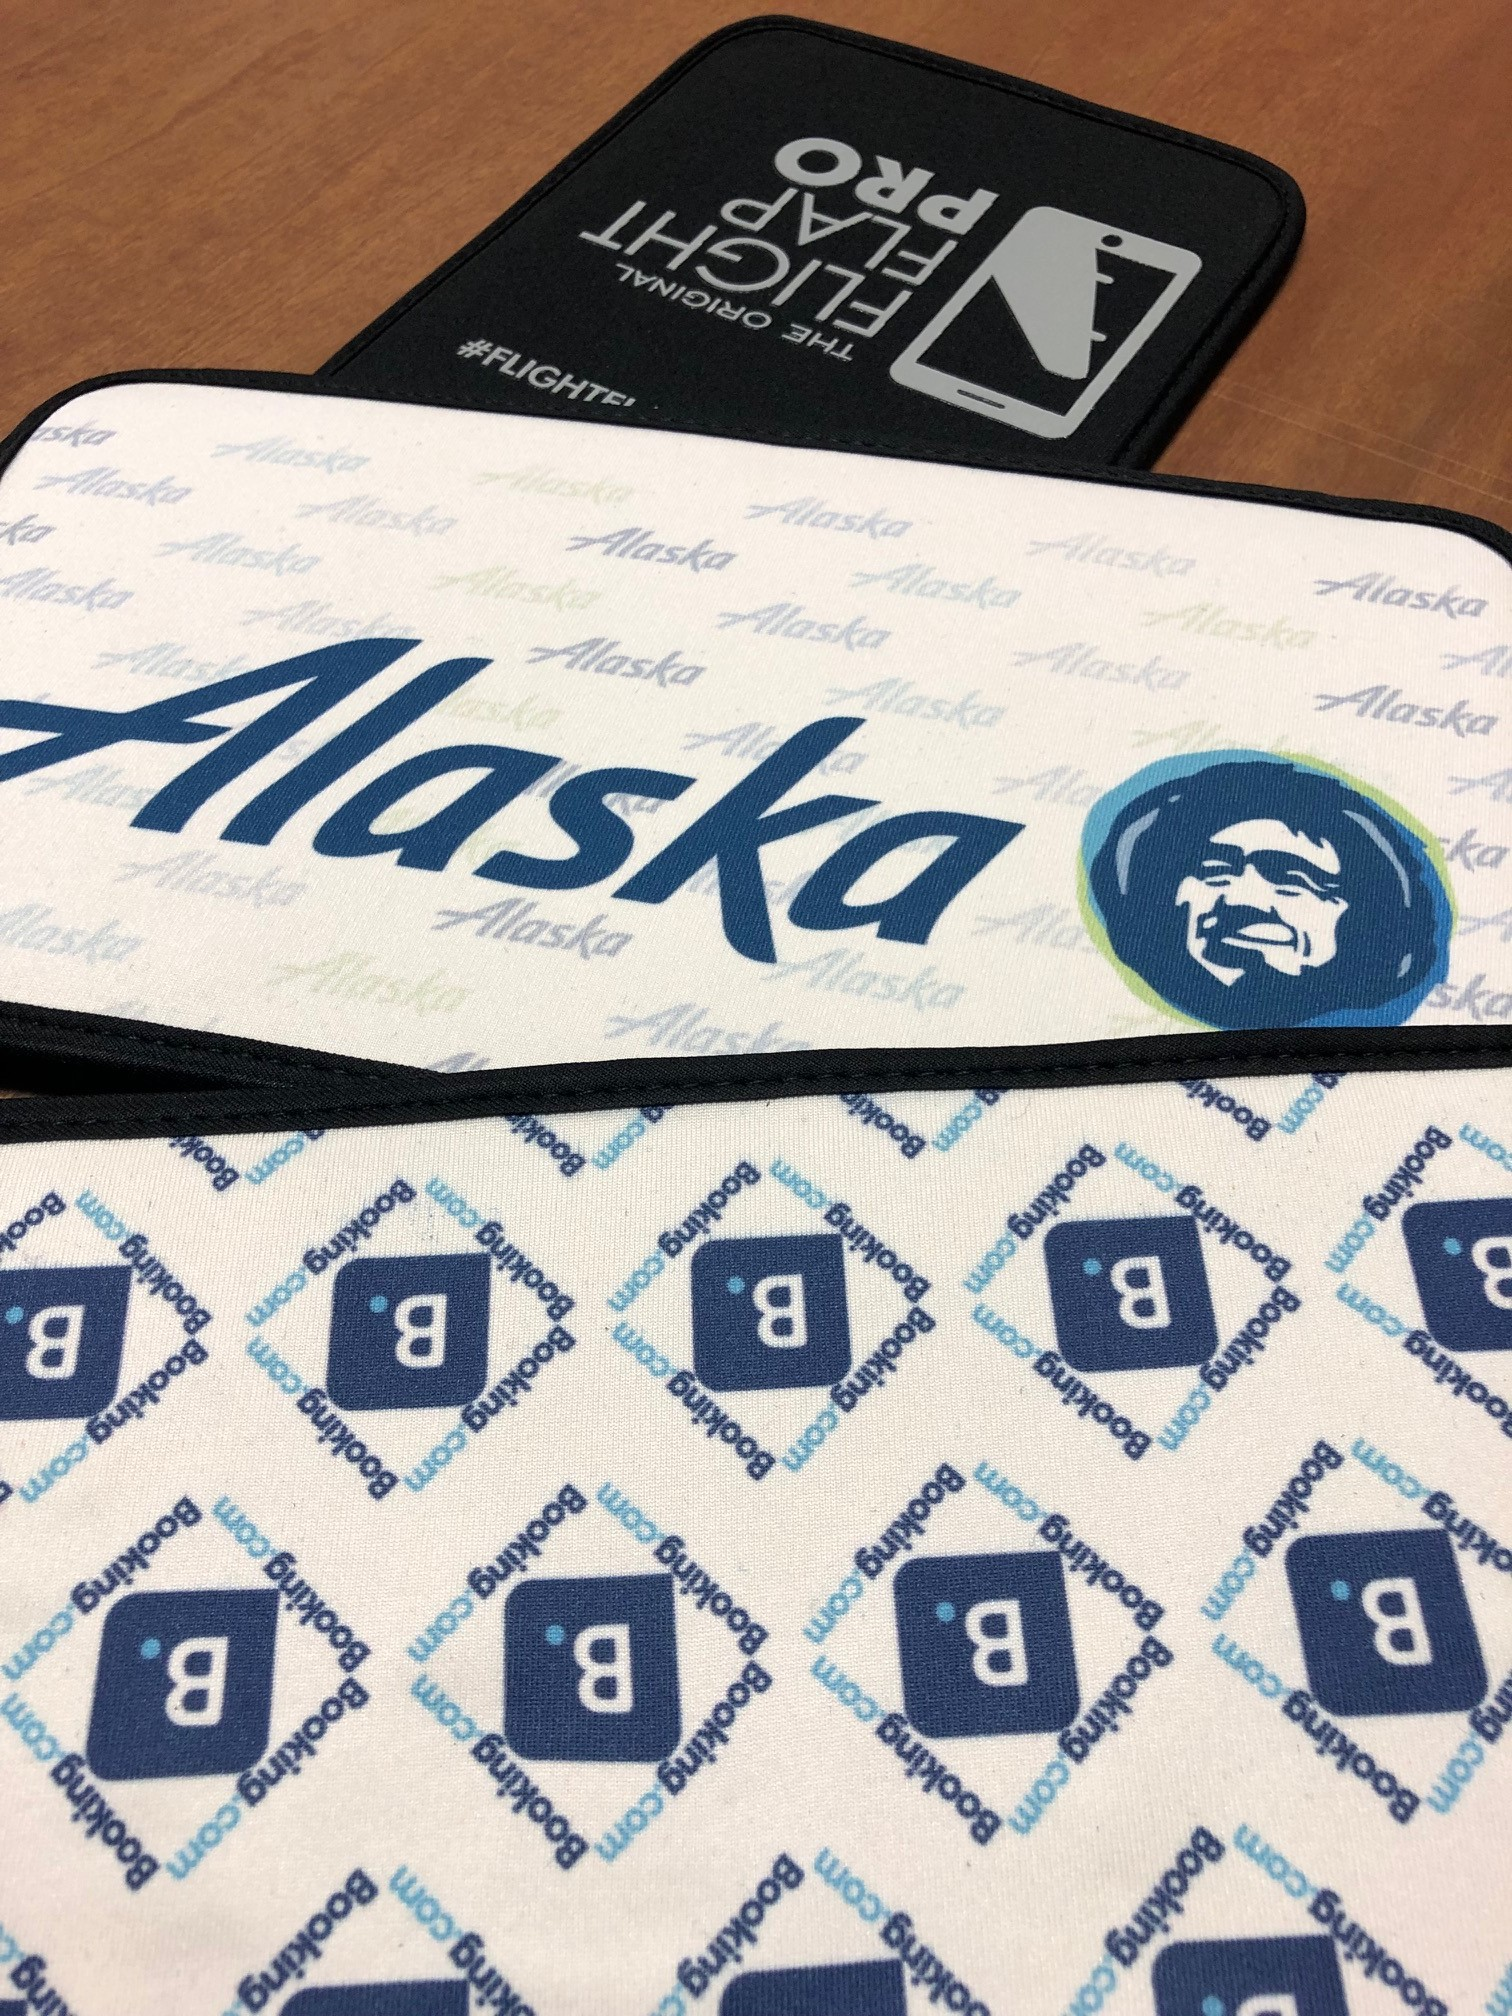 logounltd_laser_etching_embroidery_screen_printing_apparel_uniform_custom_tshirts_kirkland_bellevue_seattle_redmond_woodinville_branded_merchandise_promotional_products_logo_unltd_alaska_airlines_booking (1).jpg